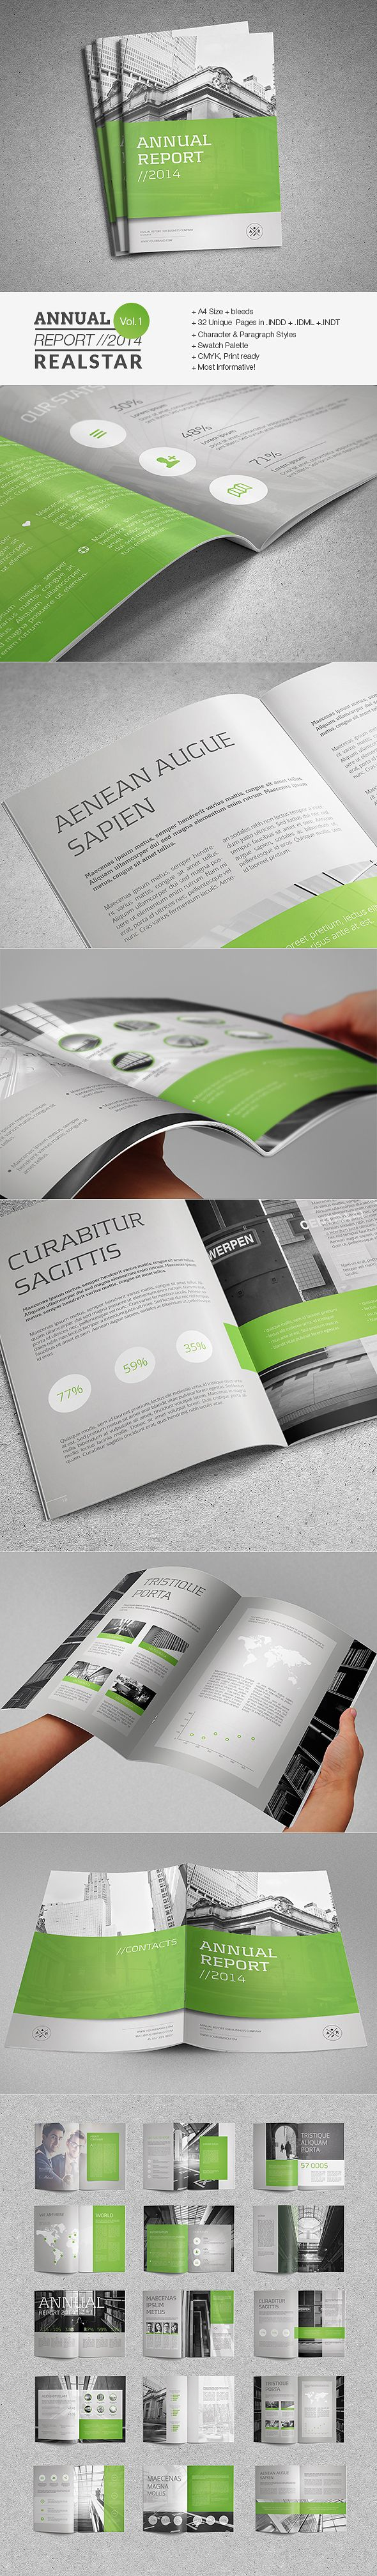 Annual Report Template II on Behance